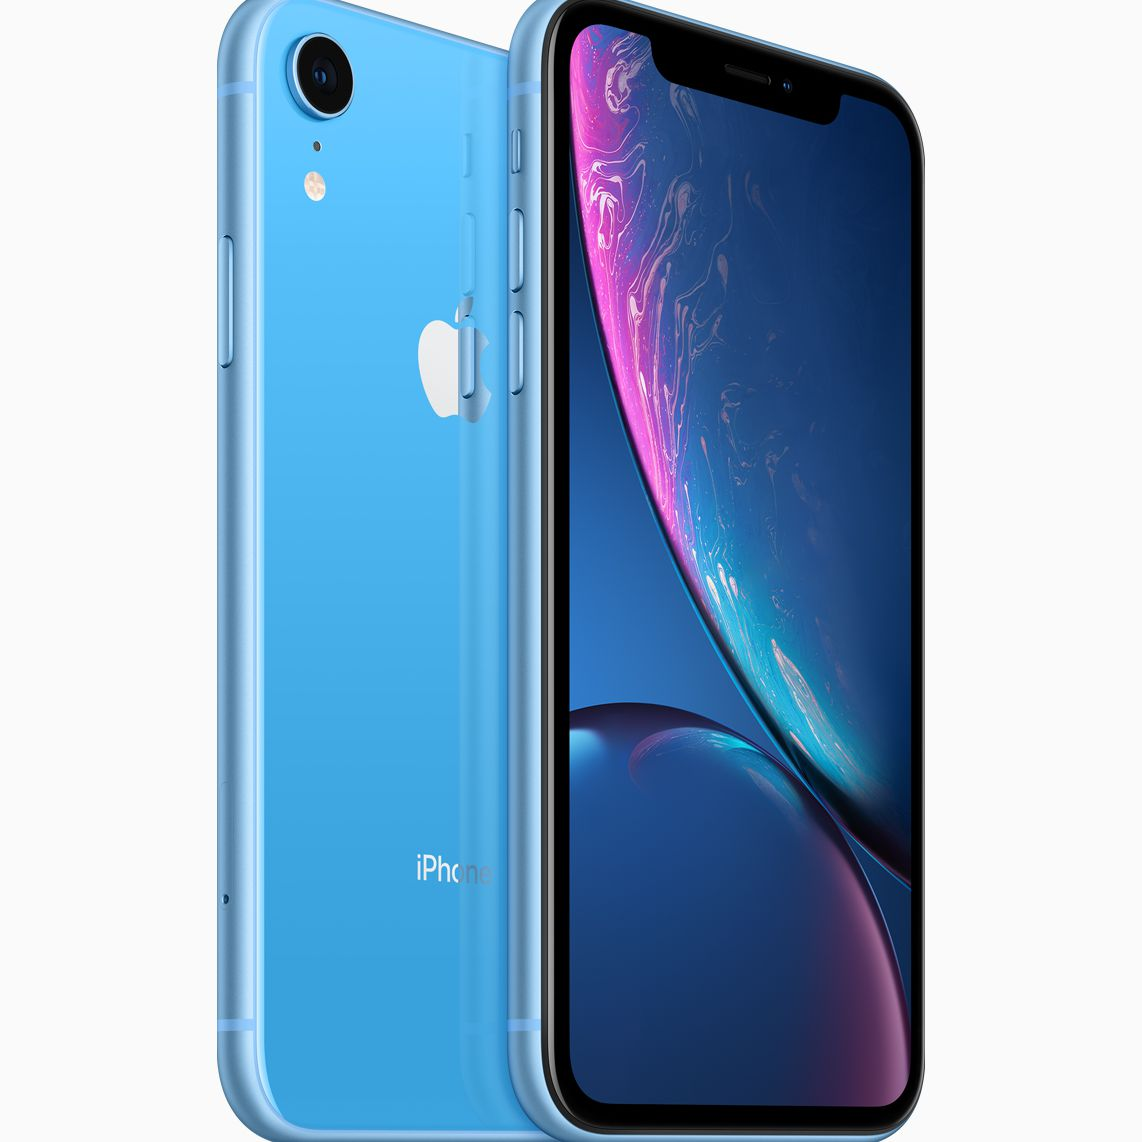 The blue-backed iPhone XR